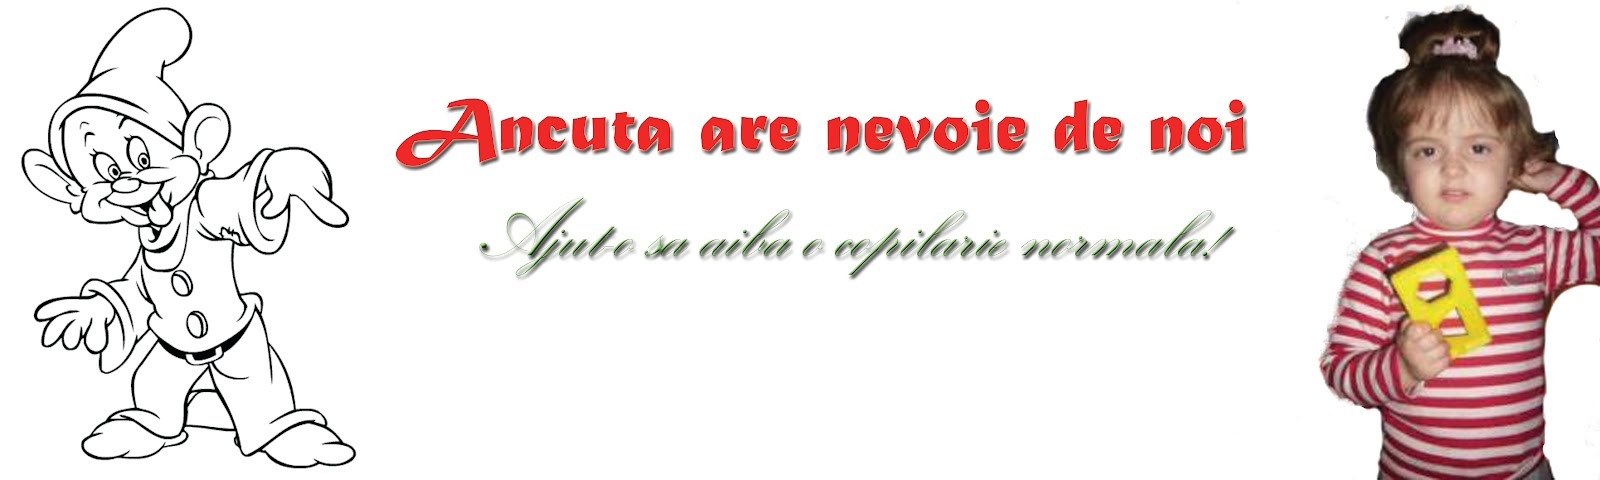 Ancuta are nevoie de noi!